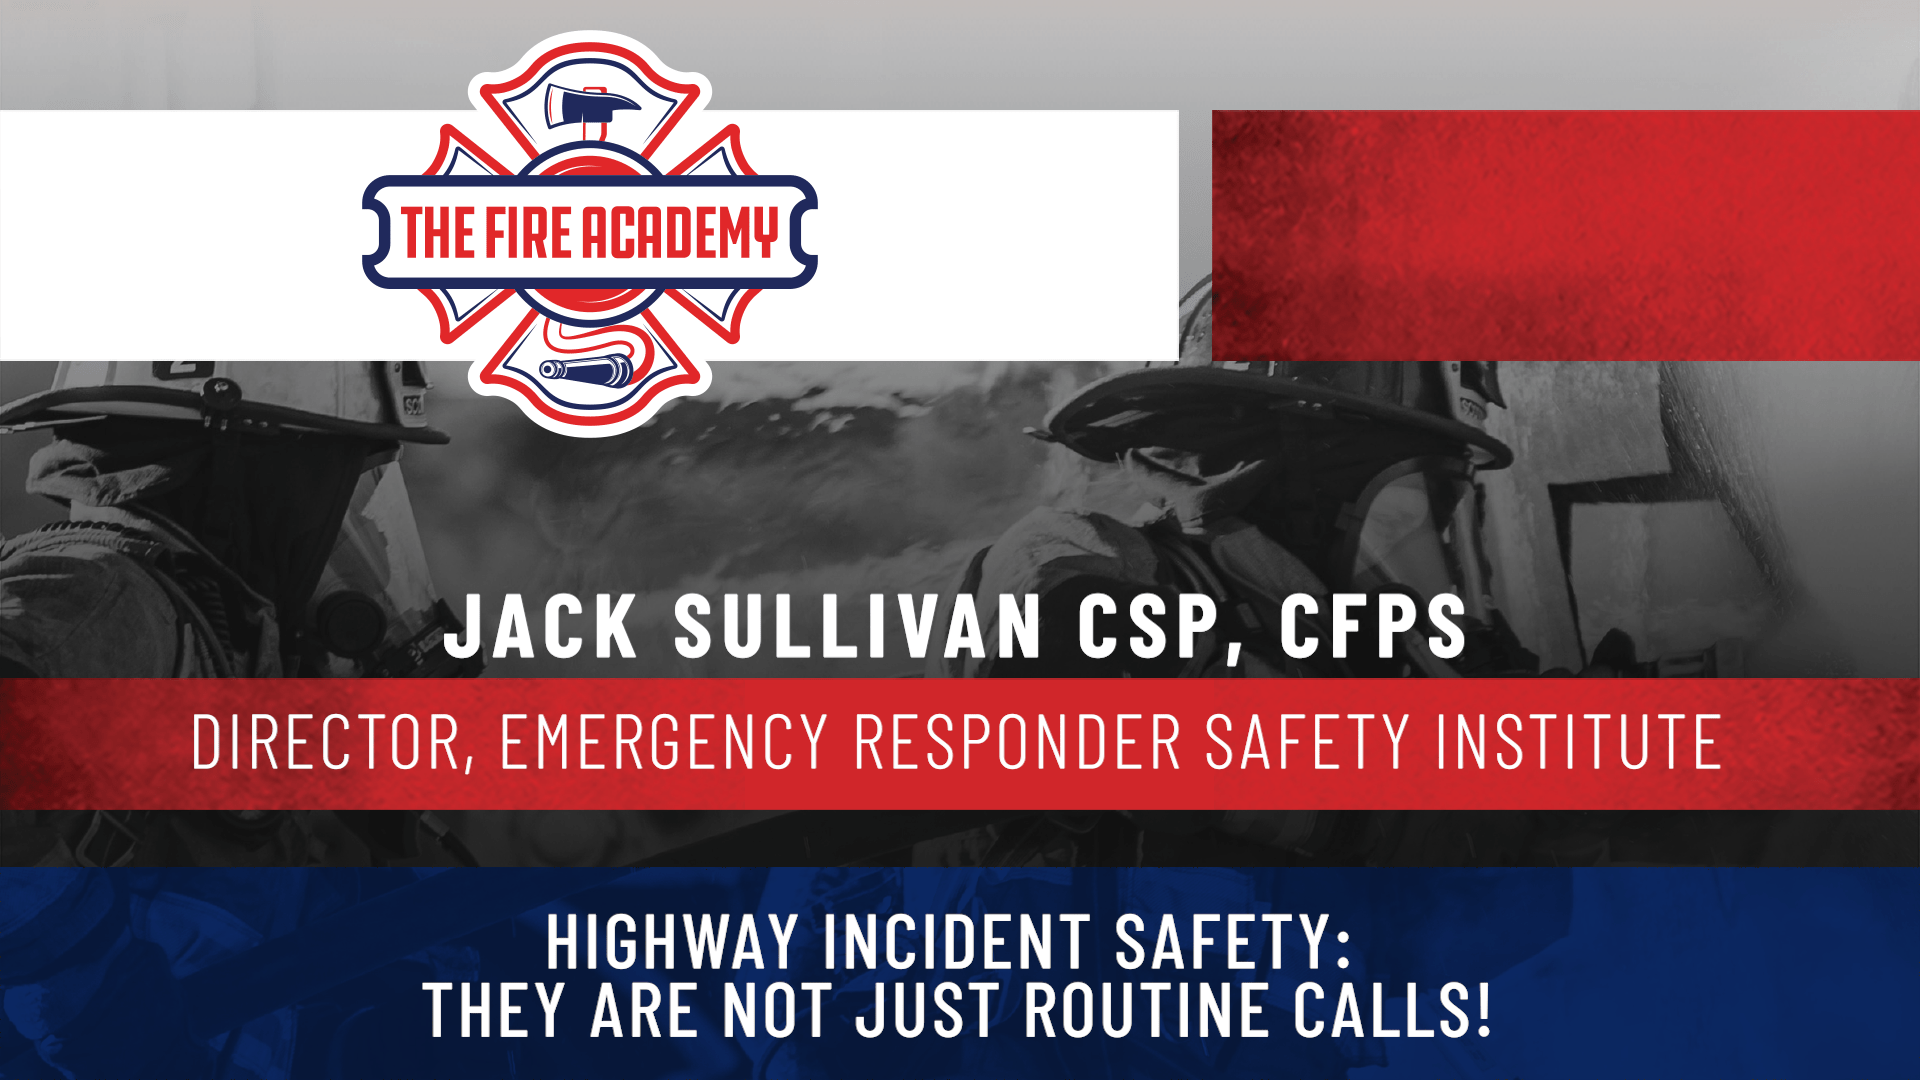 Highway Incident Safety: They Are Not Just Routine Calls!